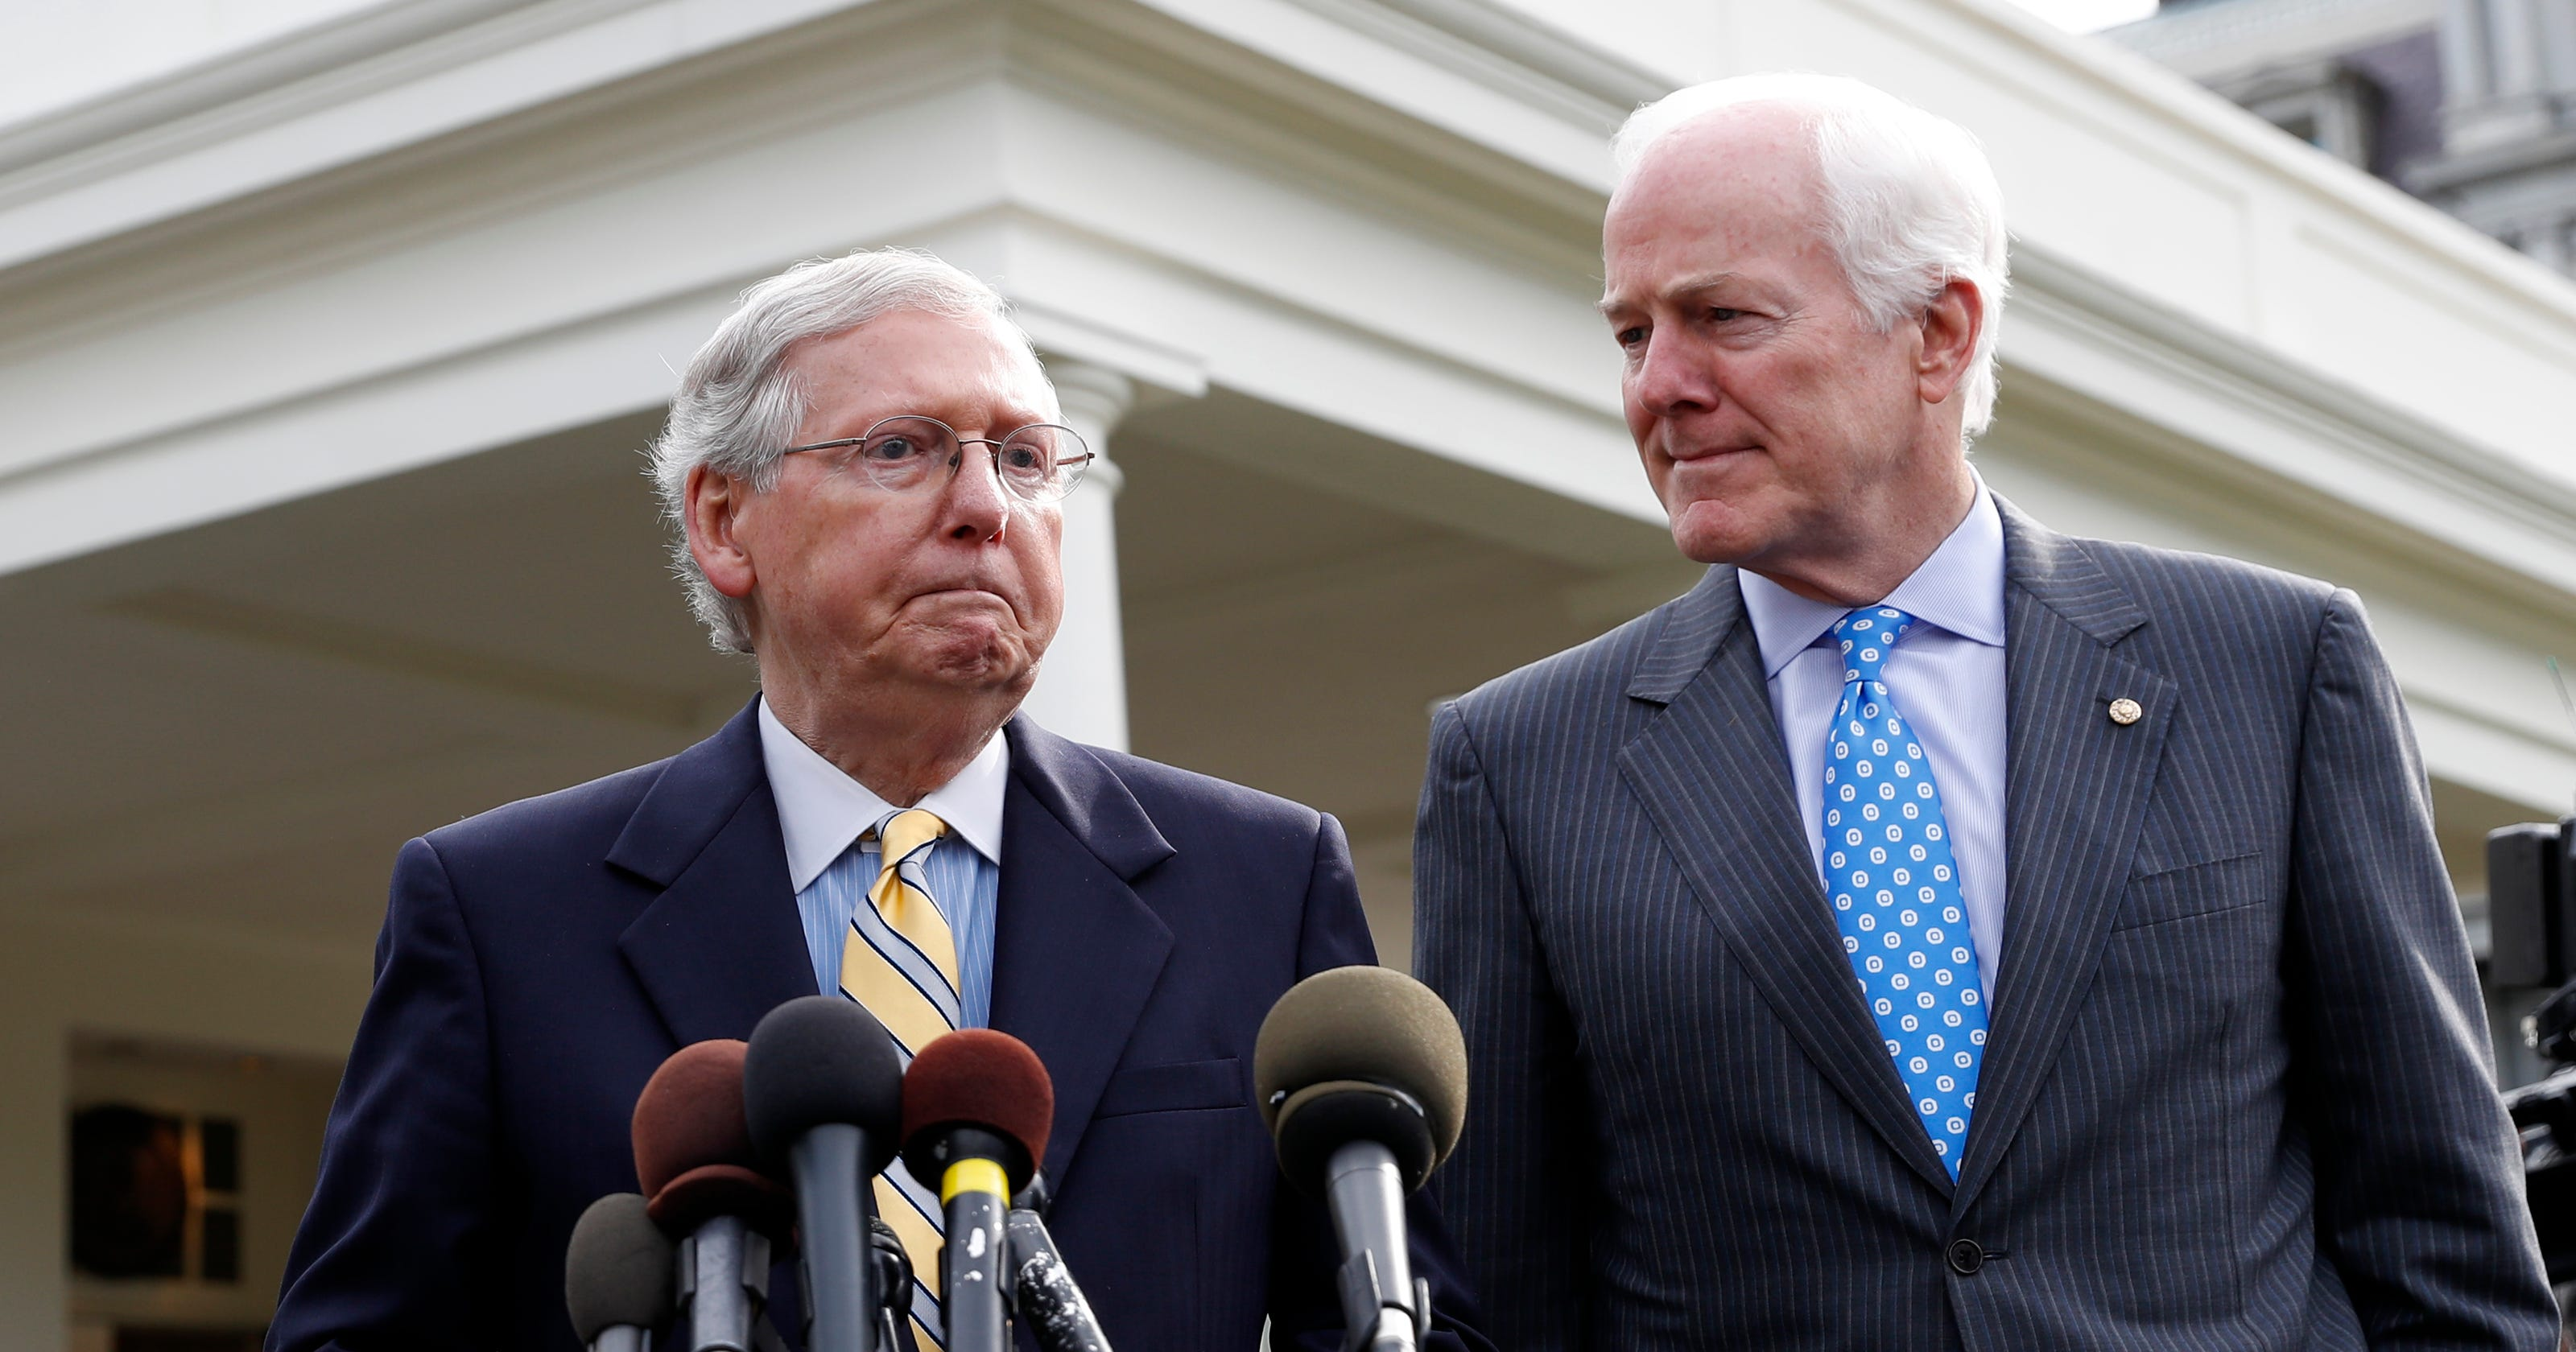 Senate Health Care Plan Poll Shows Just 12 Of Americans Support It